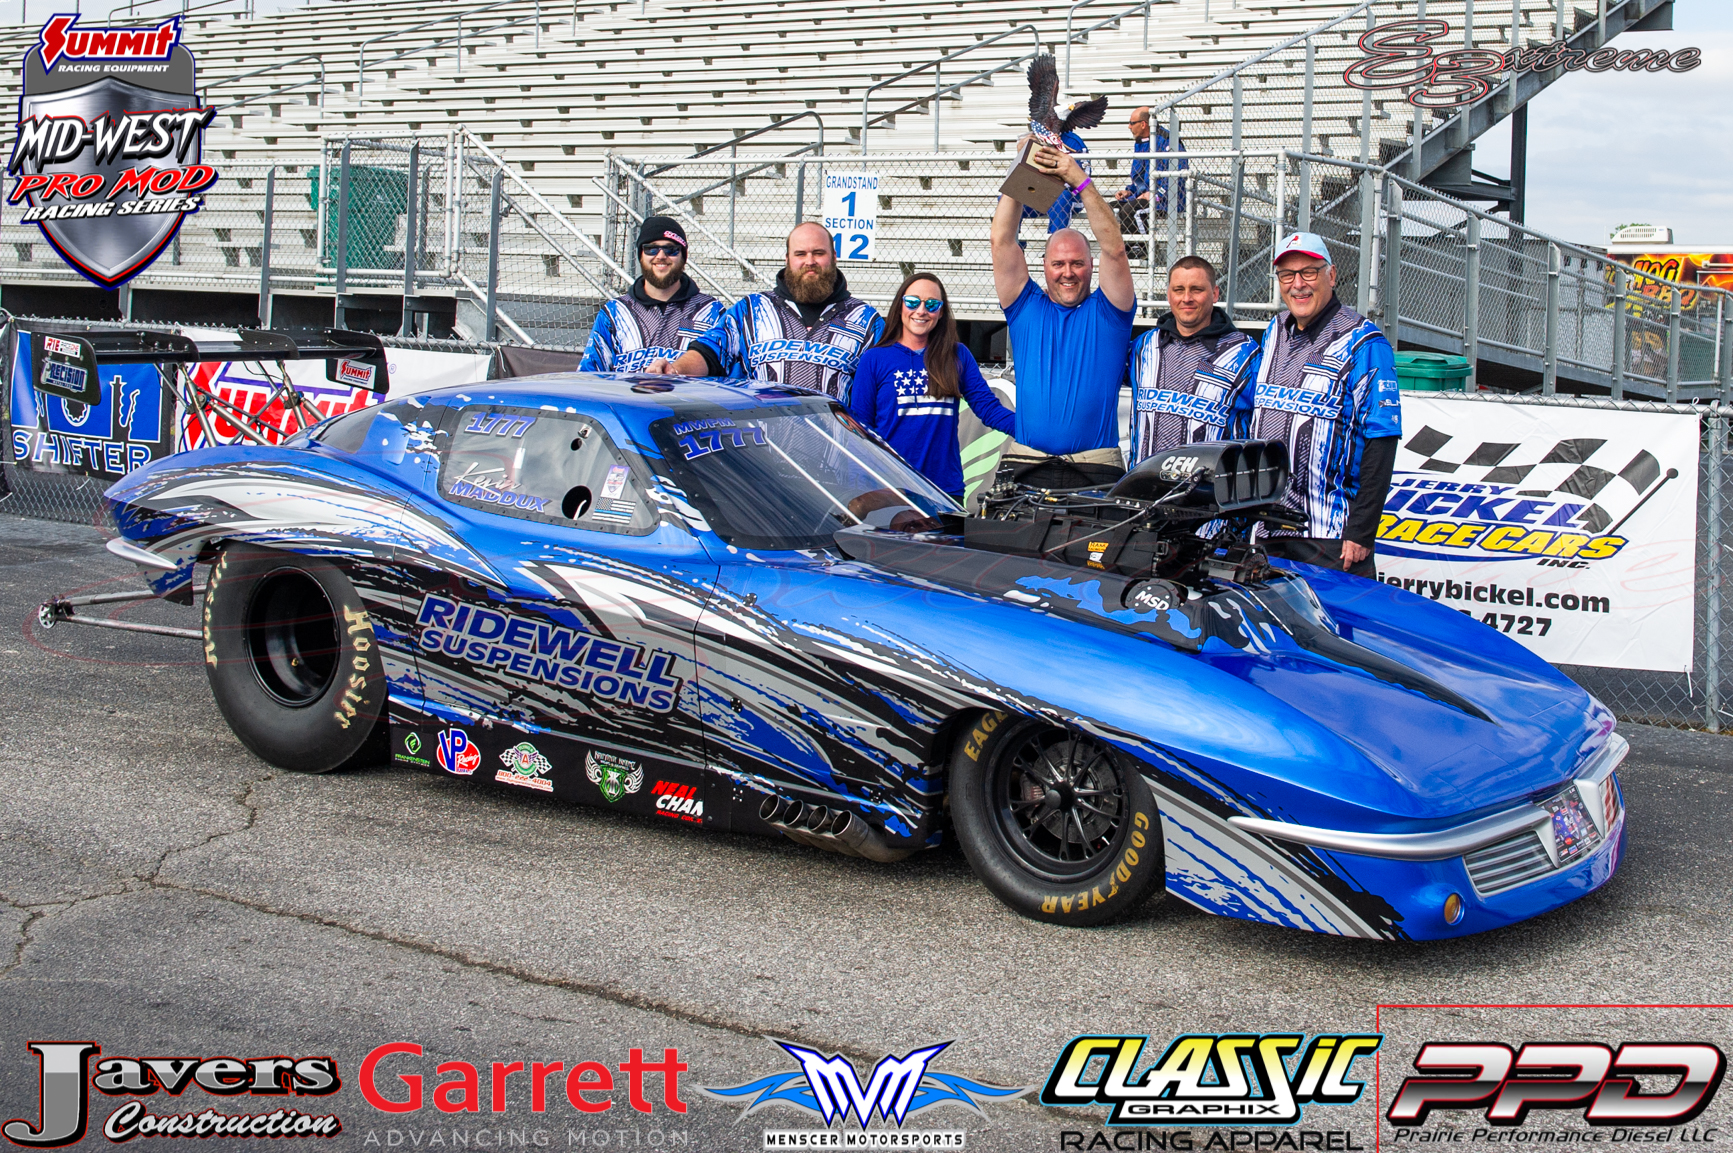 Summit Racing Equipment Pro Mod Winner Kevin Maddux